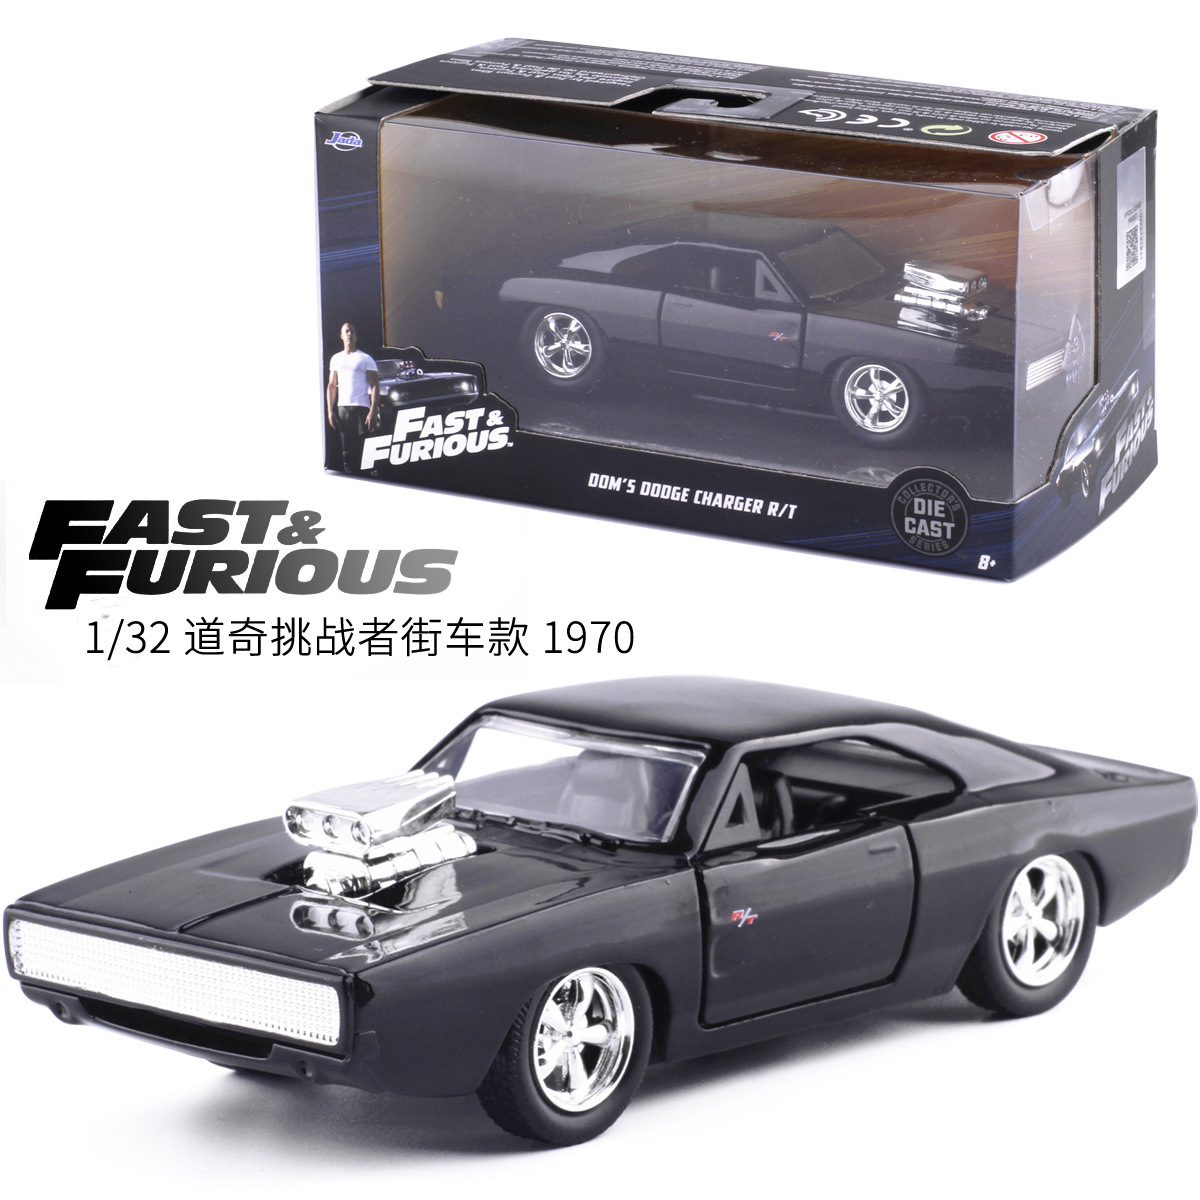 1:32 Jada Fast And Furious Classical Model Alloy Car DODGE Charger R/T Metal Diecasts Vehicle Collection Toy For Children Gift